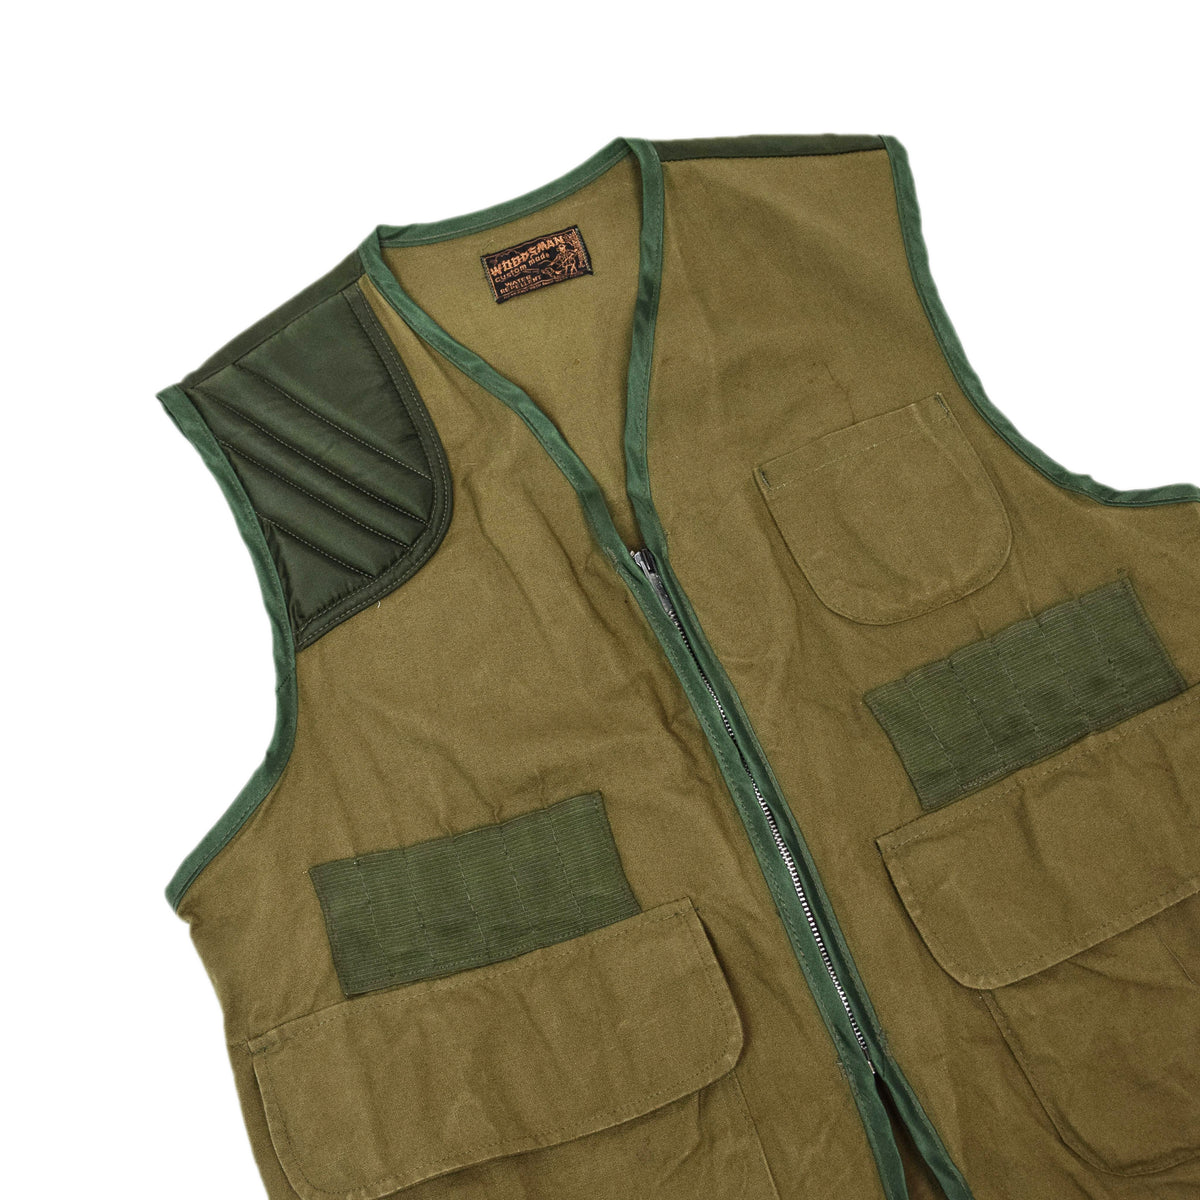 Vintage Woodsman Hunting Shooting Vest Waistcoat Green M / L chest